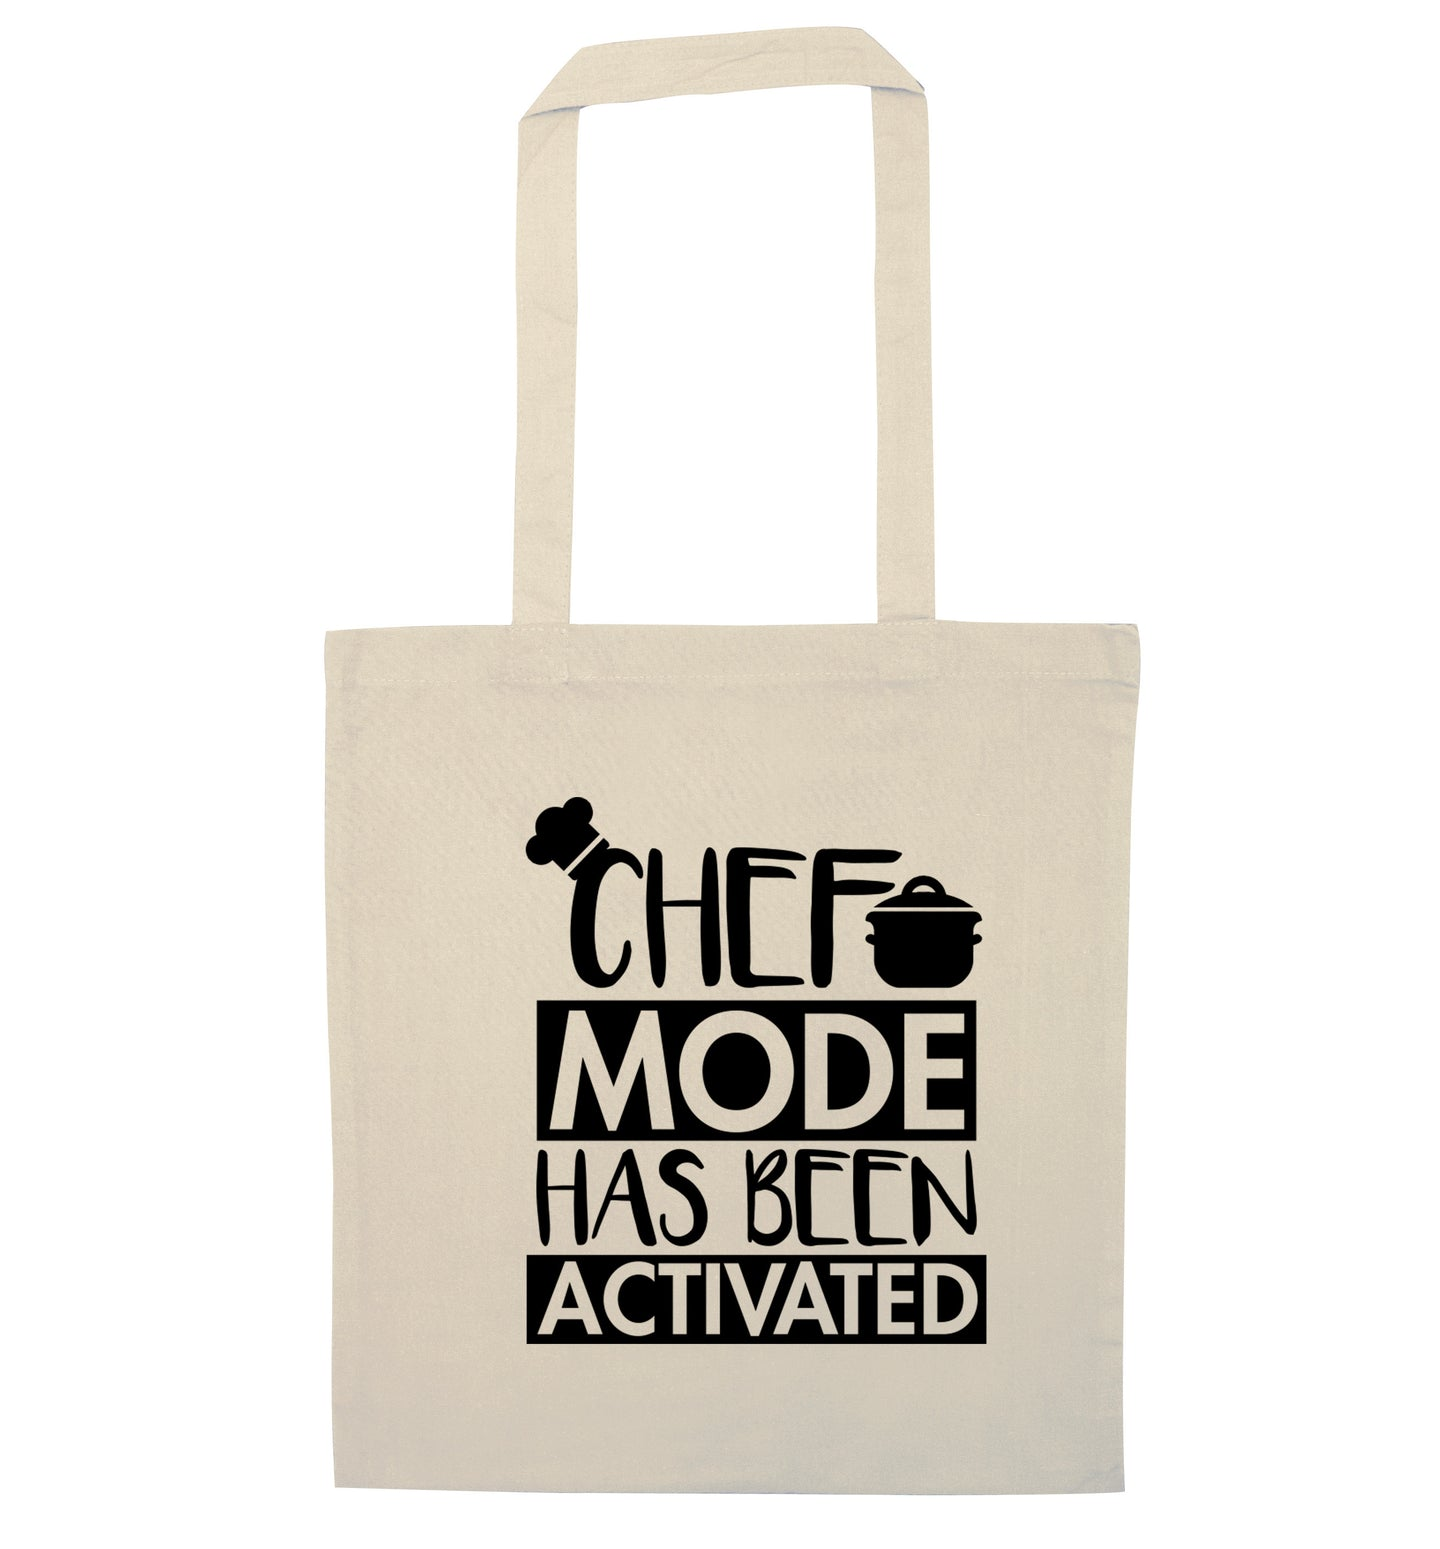 Chef mode has been activated natural tote bag